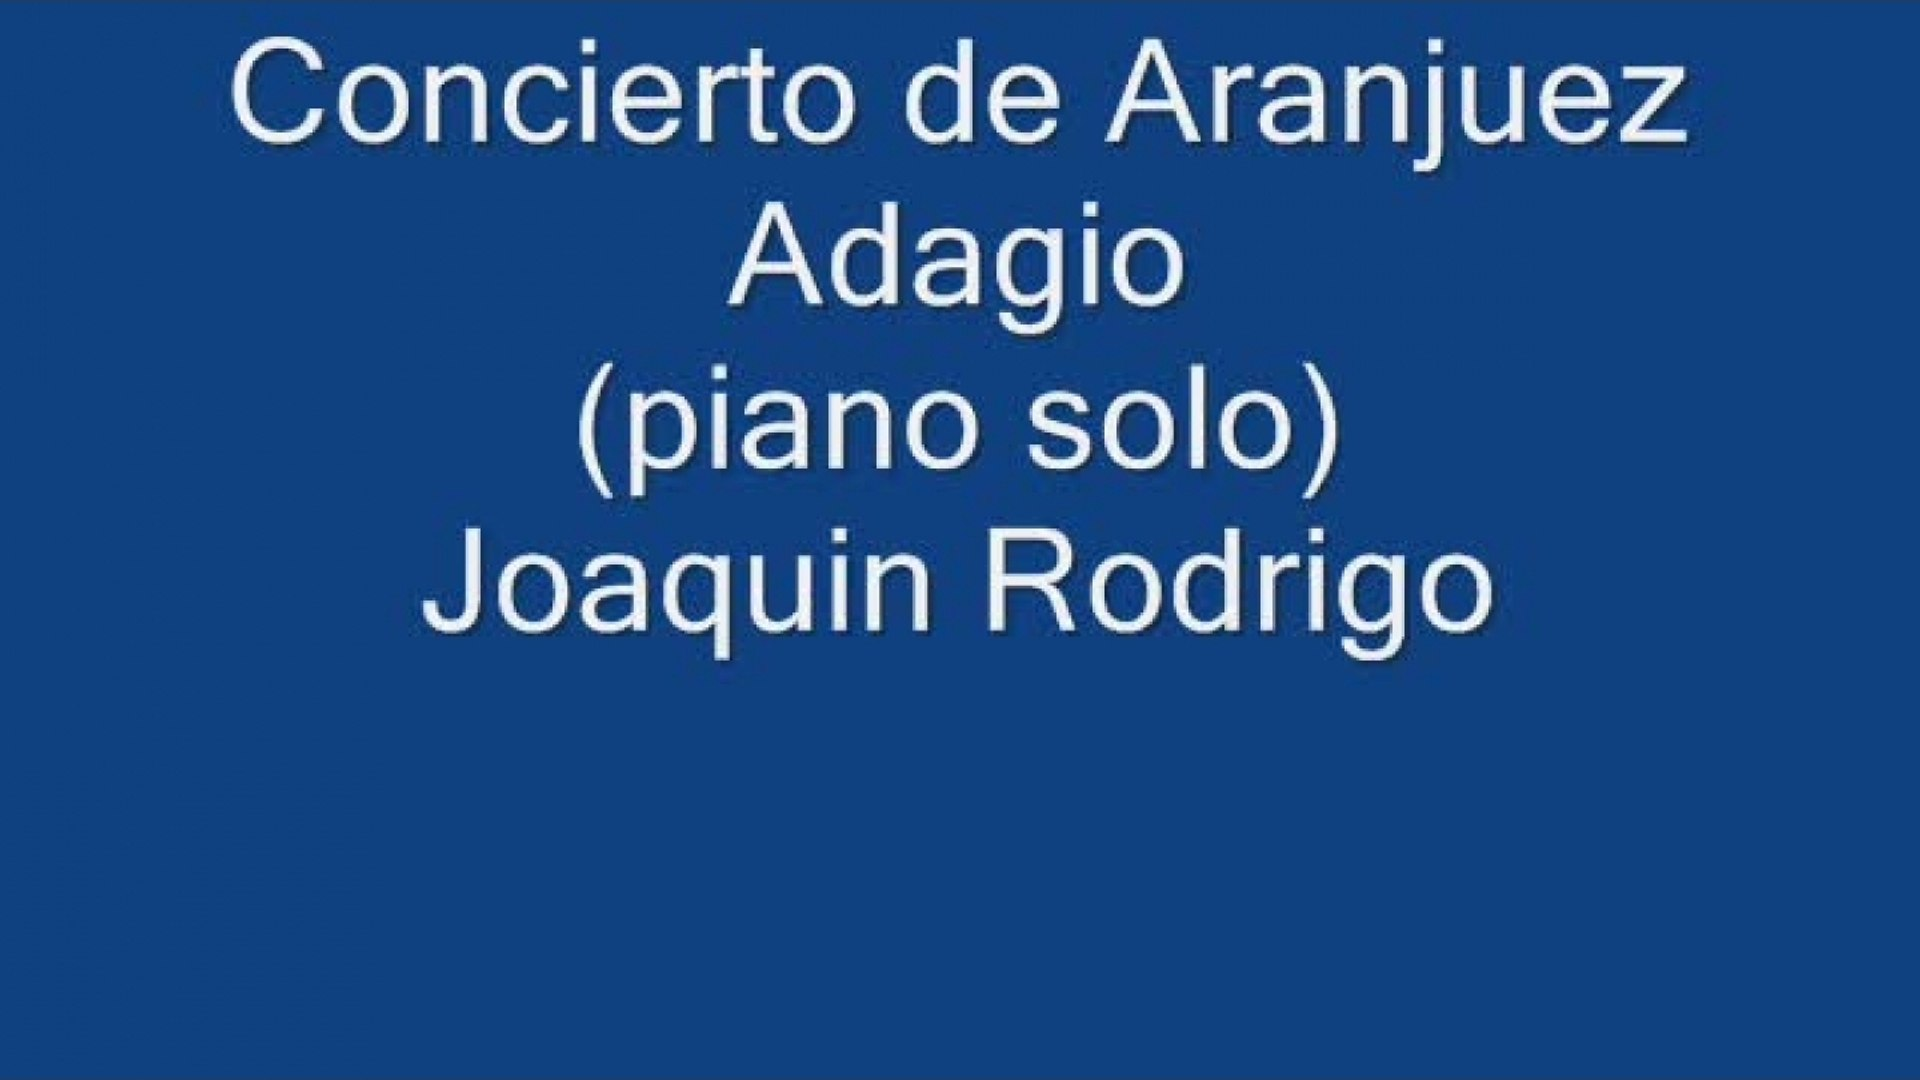 Mercuzio Pianist Concierto De Aranjuez Adagio By Joaquin Rodrigo Solo Piano Transcription Video Dailymotion